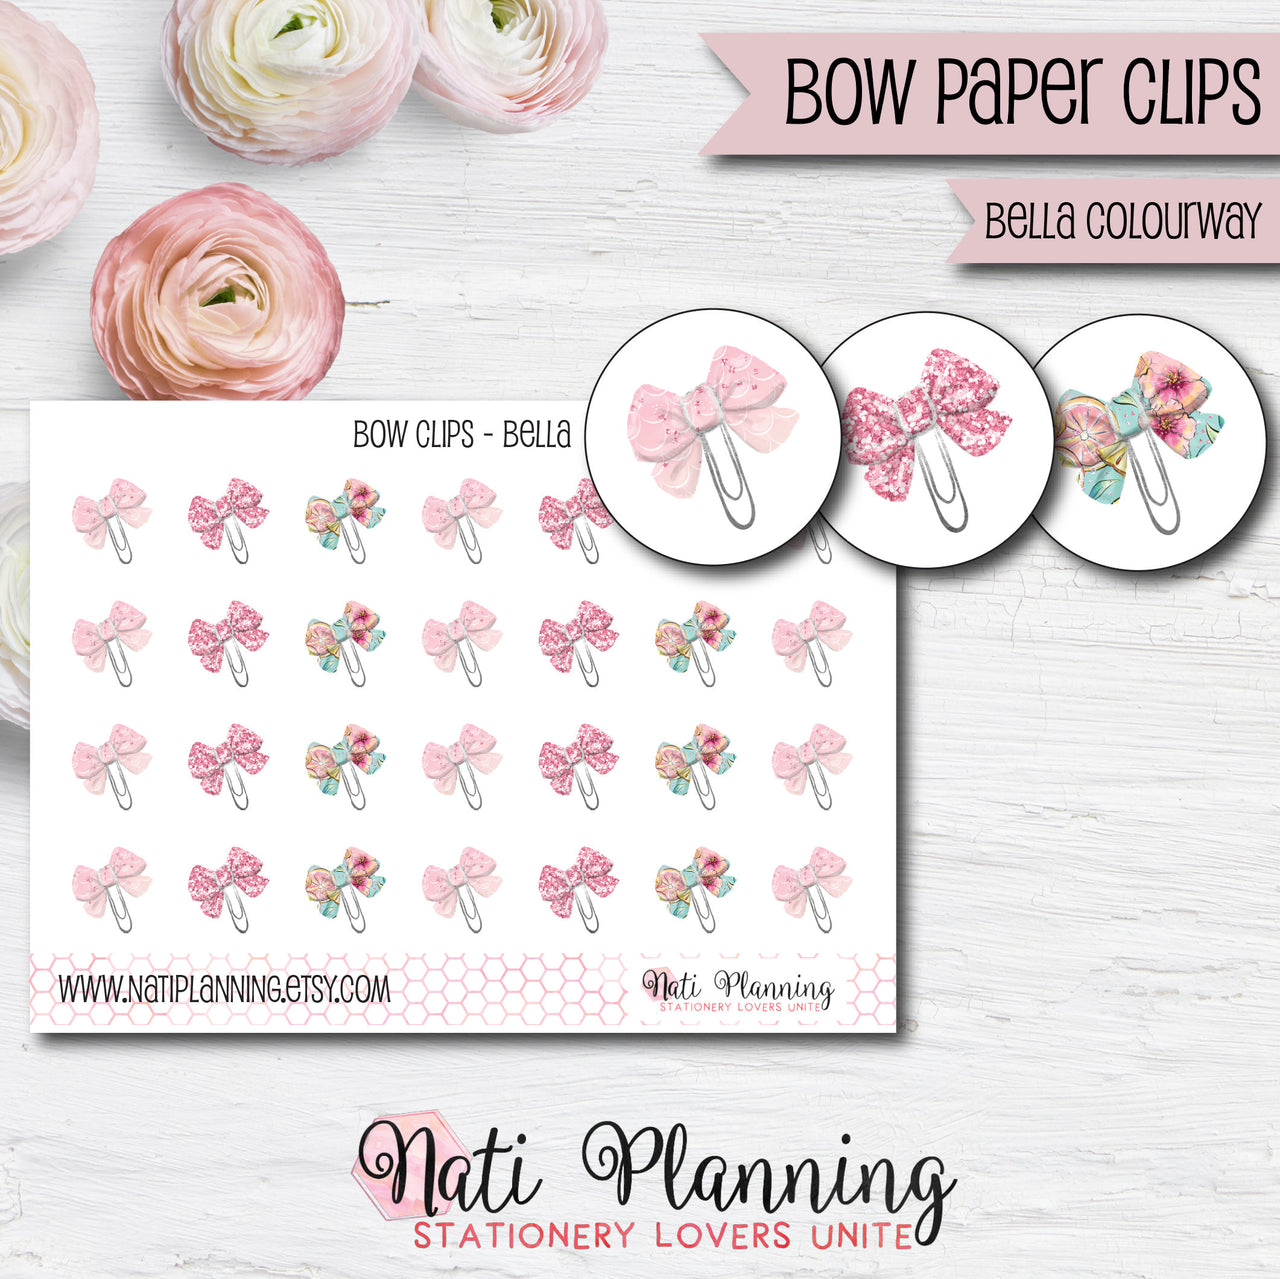 Bow Paper Clip Stickers - Bella Colourway